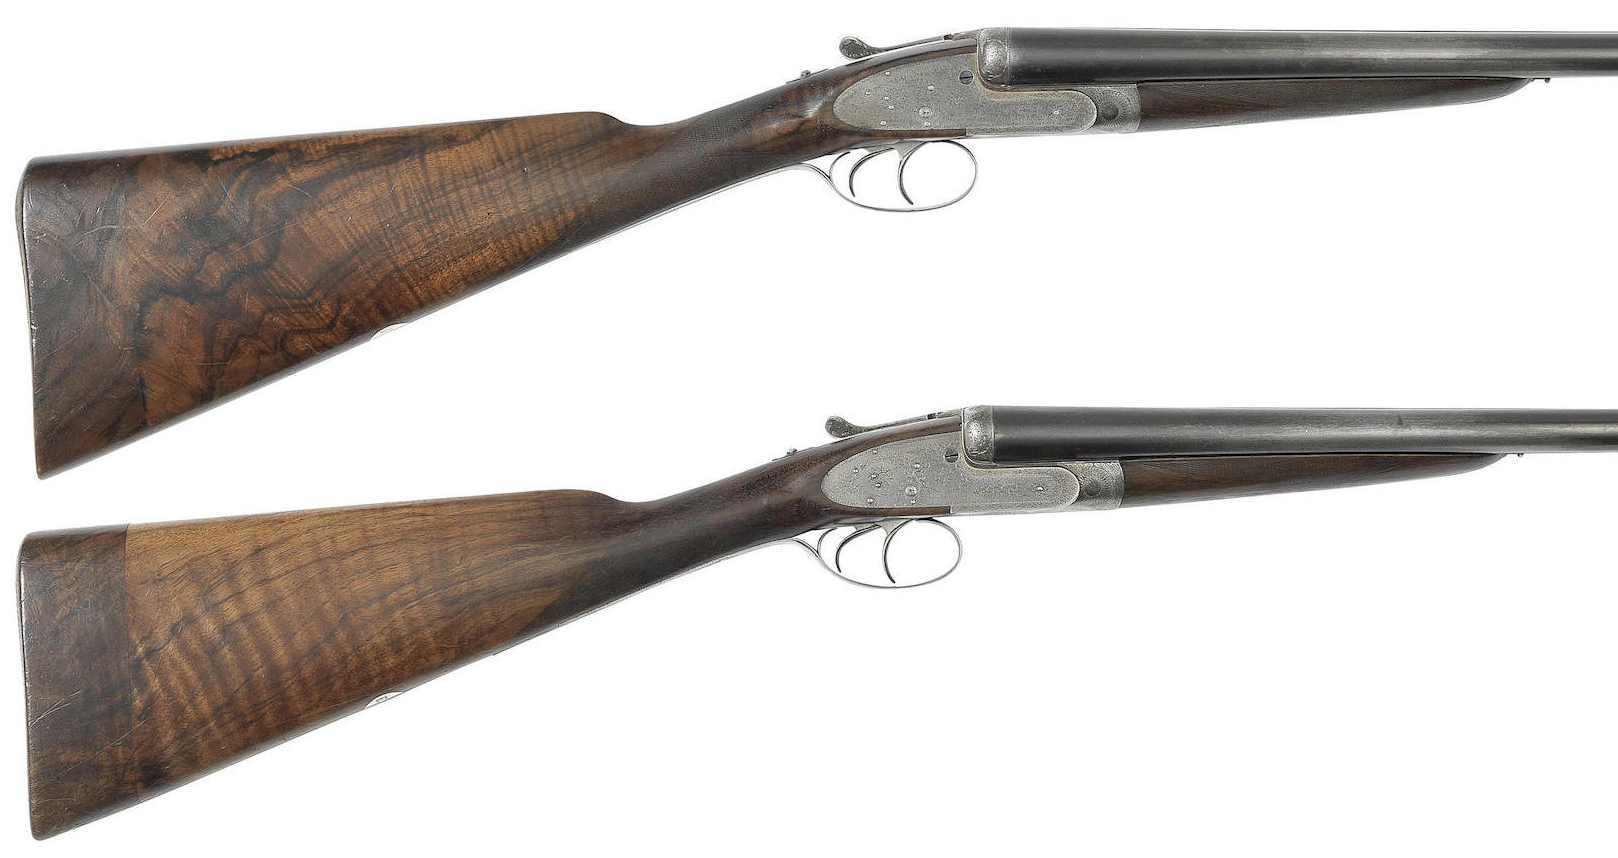 A pair of 12-bore self-opening sidelock ejector guns by J. Purdey & Sons, no. 15824-5a